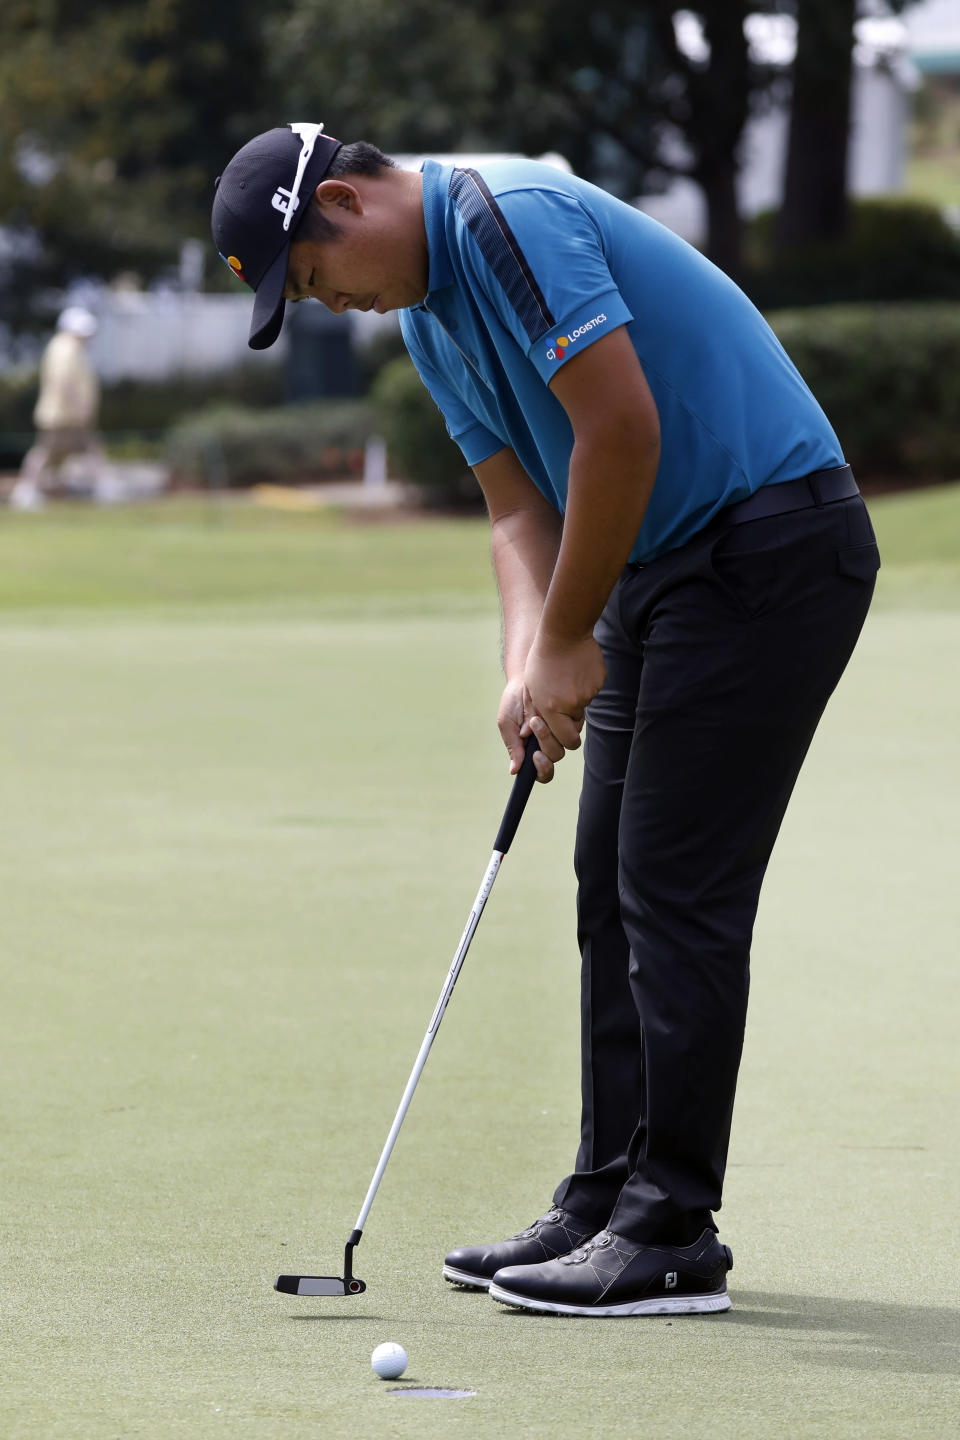 Byeong Hun An, of South Korea, strokes a birdie putt on the 10th green during the second round of the Sanderson Farms Championship golf tournament in Jackson, Miss., Friday, Sept. 20, 2019. (AP Photo/Rogelio V. Solis)